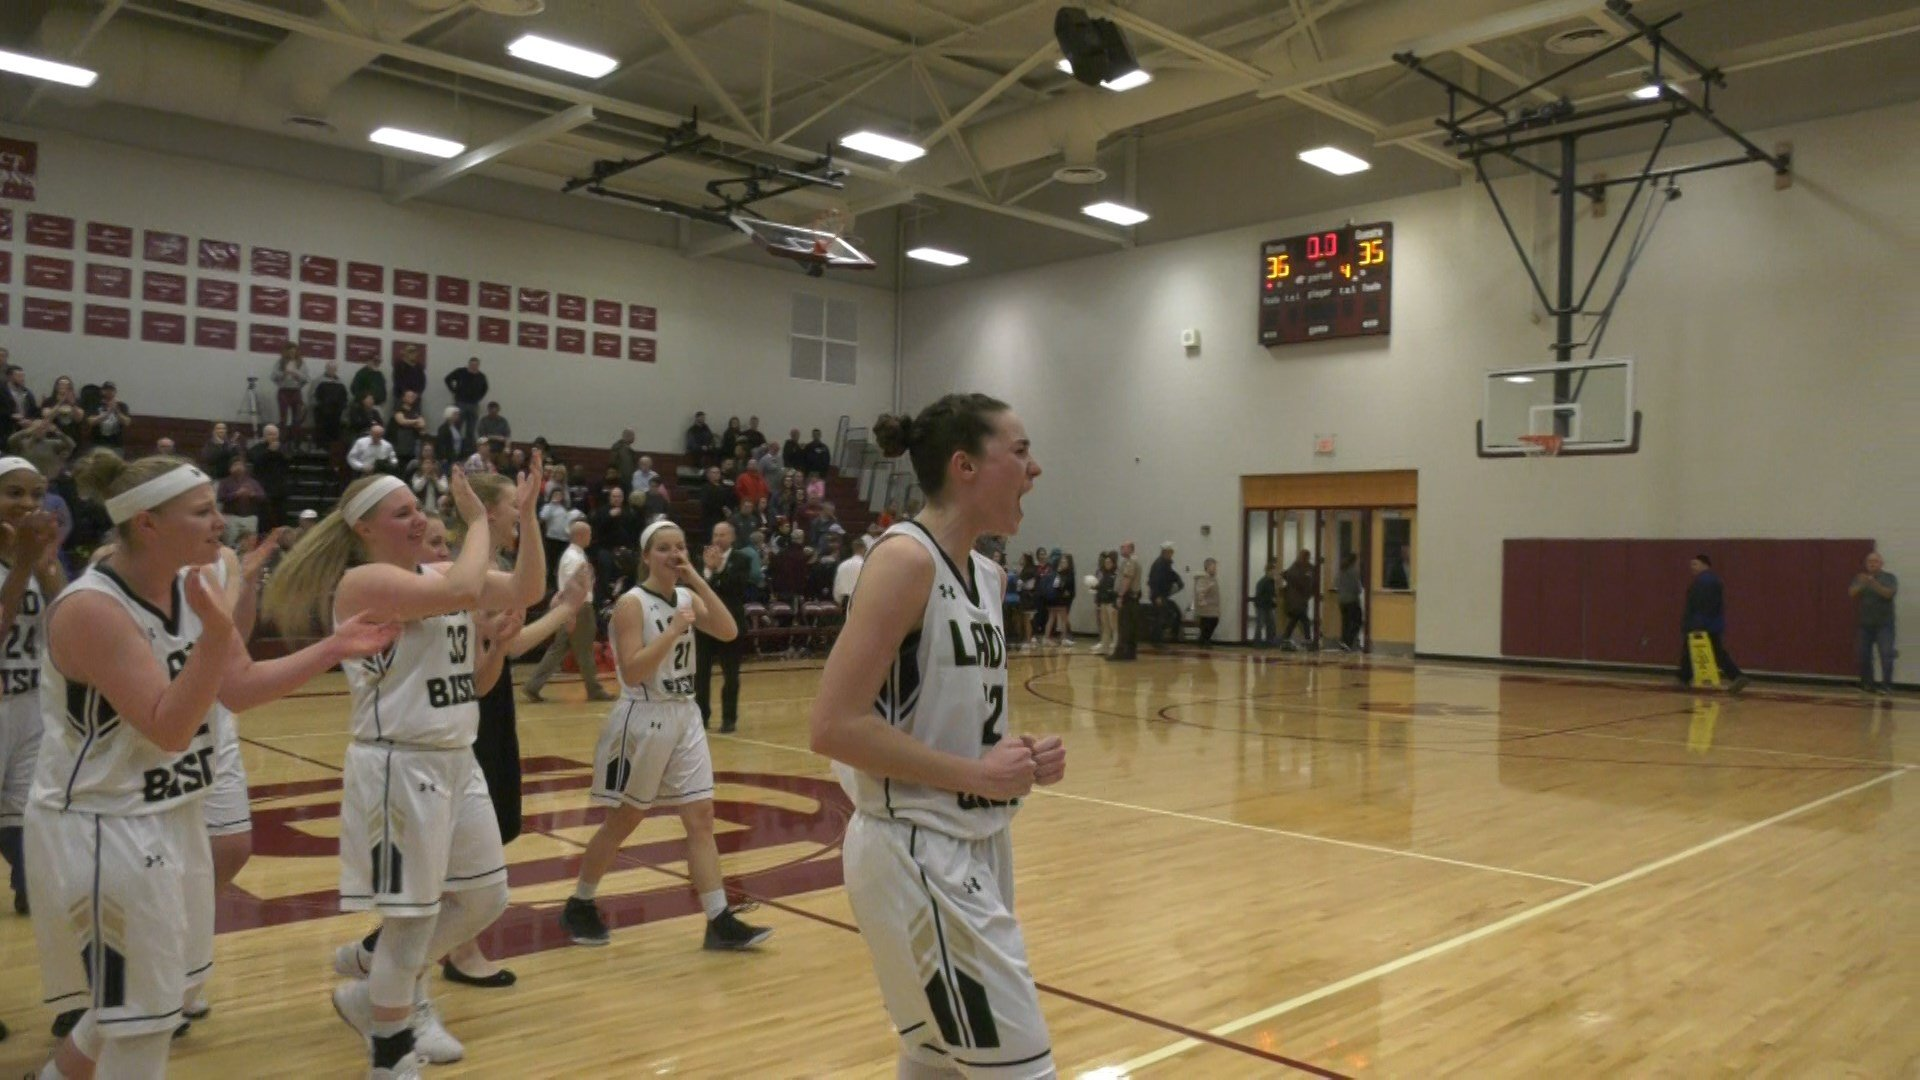 Leah Calhoun's late three-pointer lifted Buffalo Gap to the state championship game for the first time since 2009